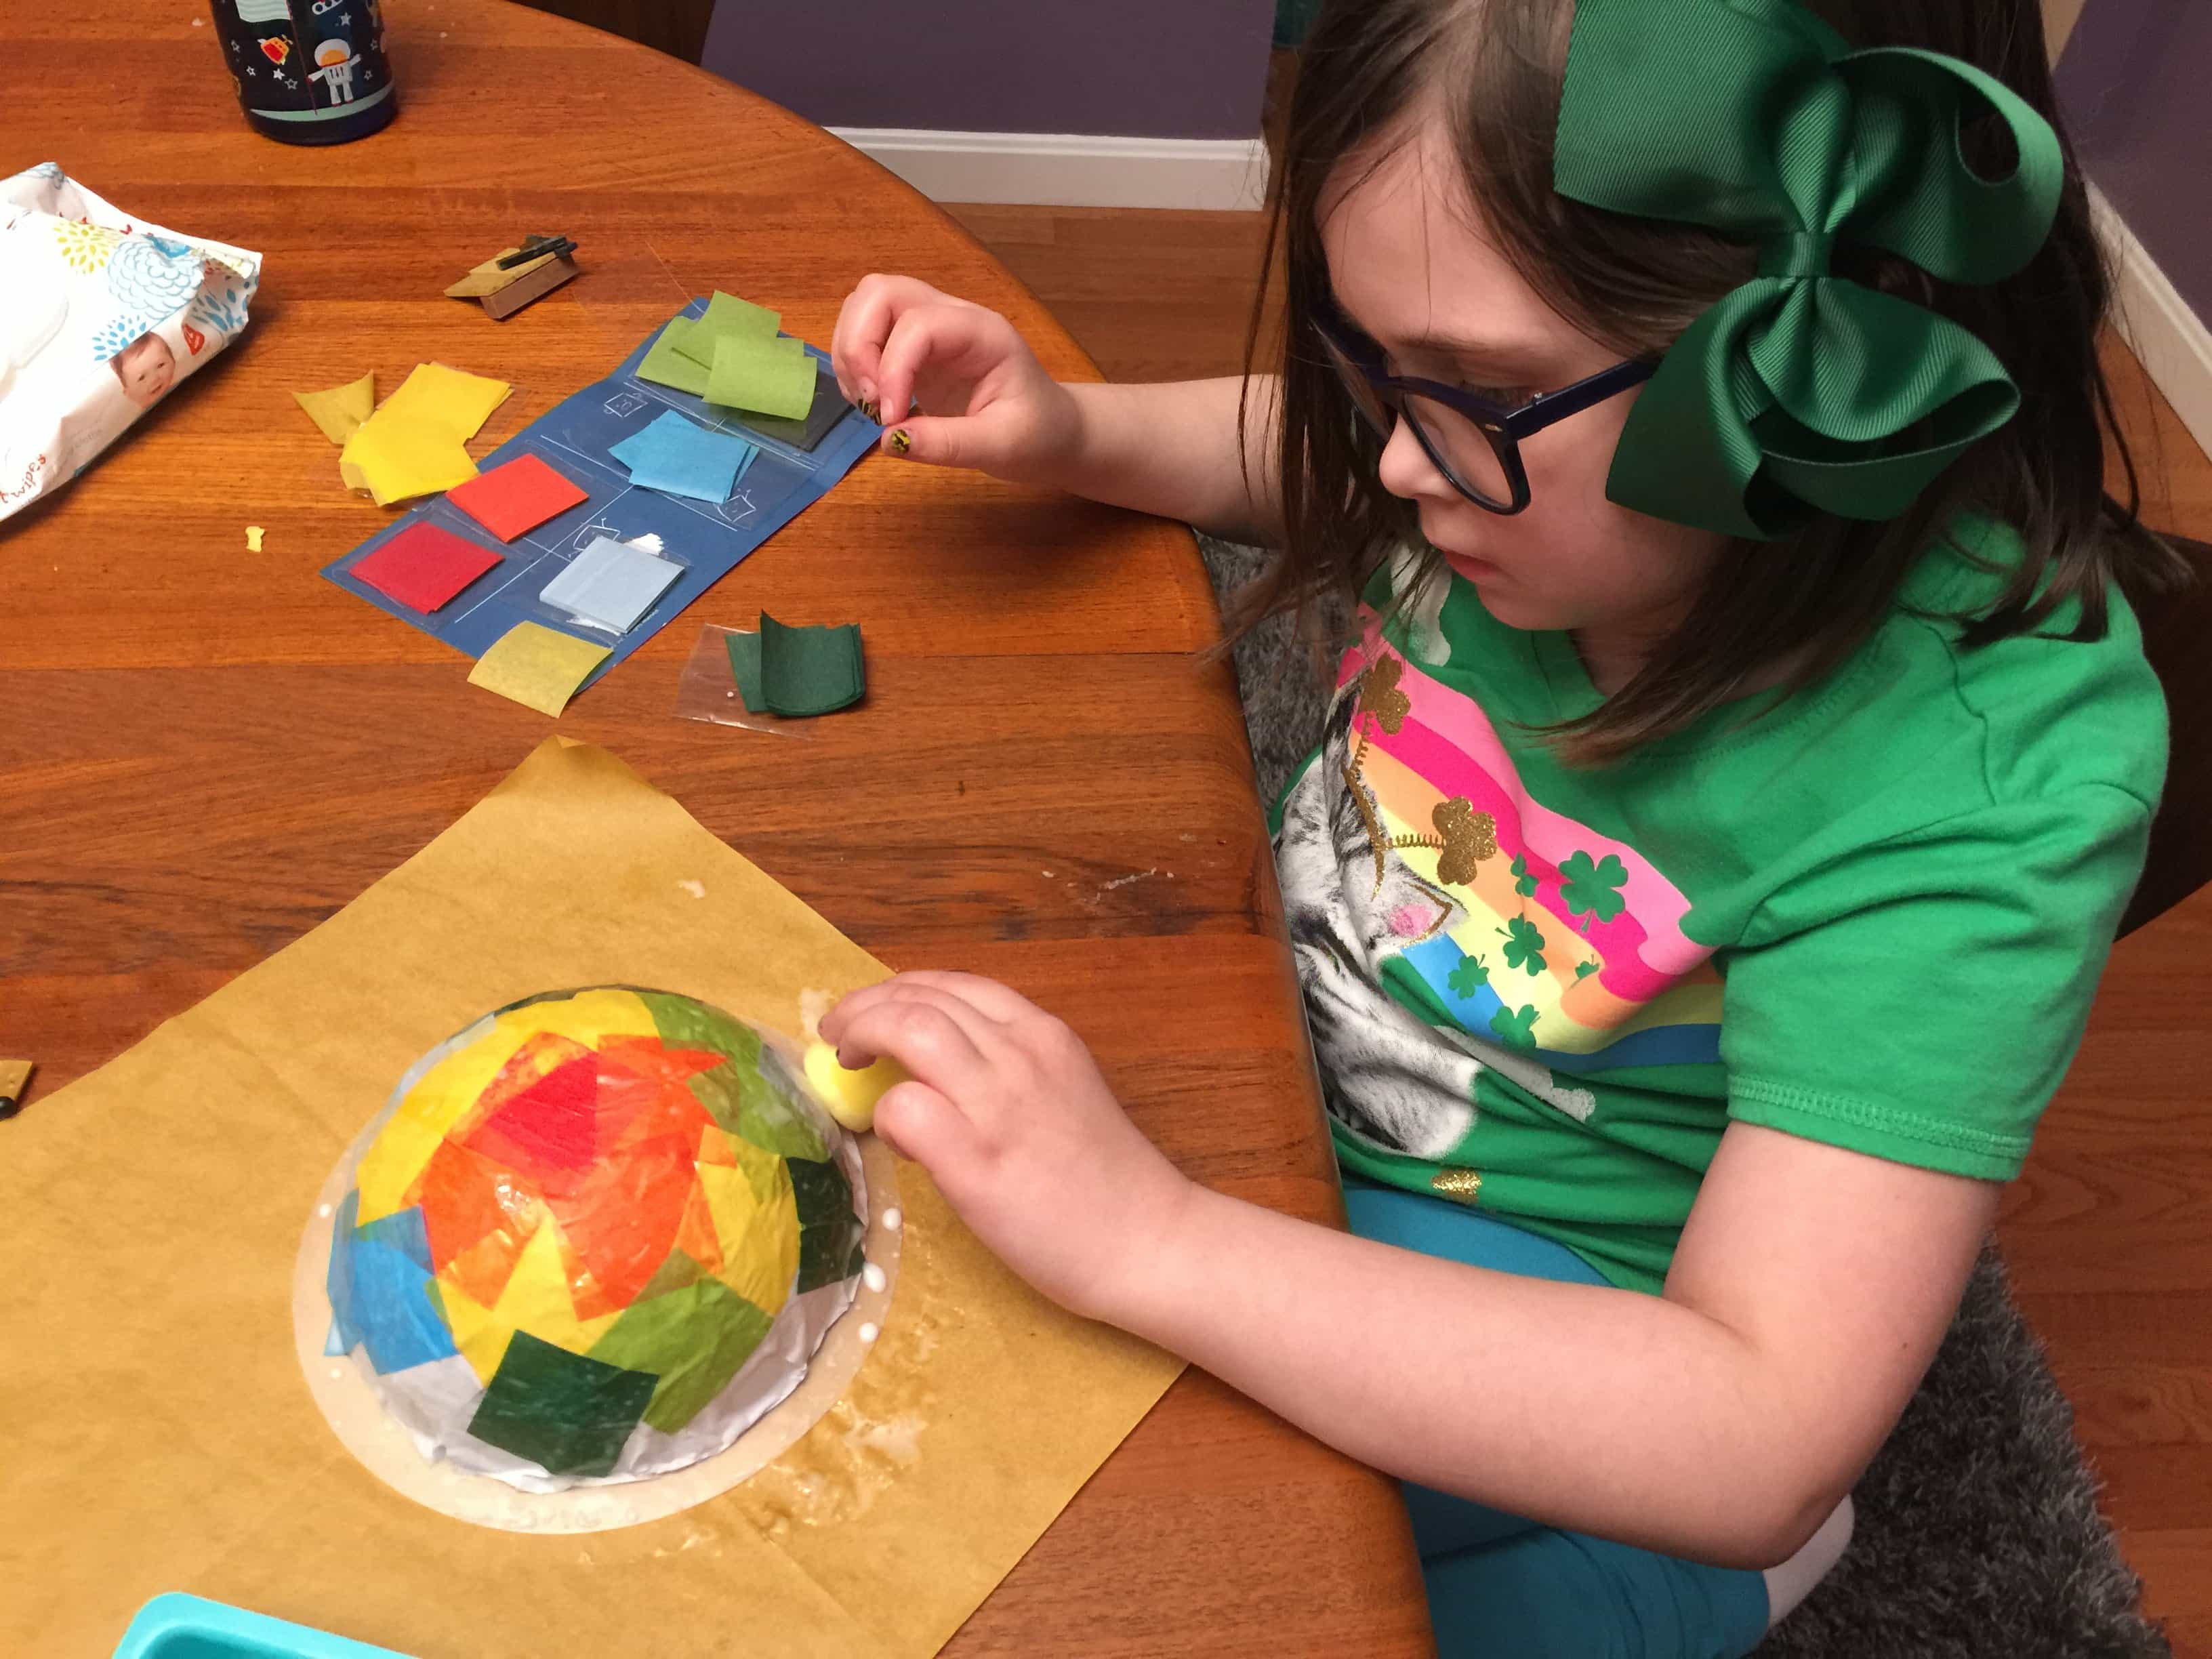 Doodle Crate February 2017 Subscription Box Review & Coupon – HAND-CRAFTED PAPER BOWLS